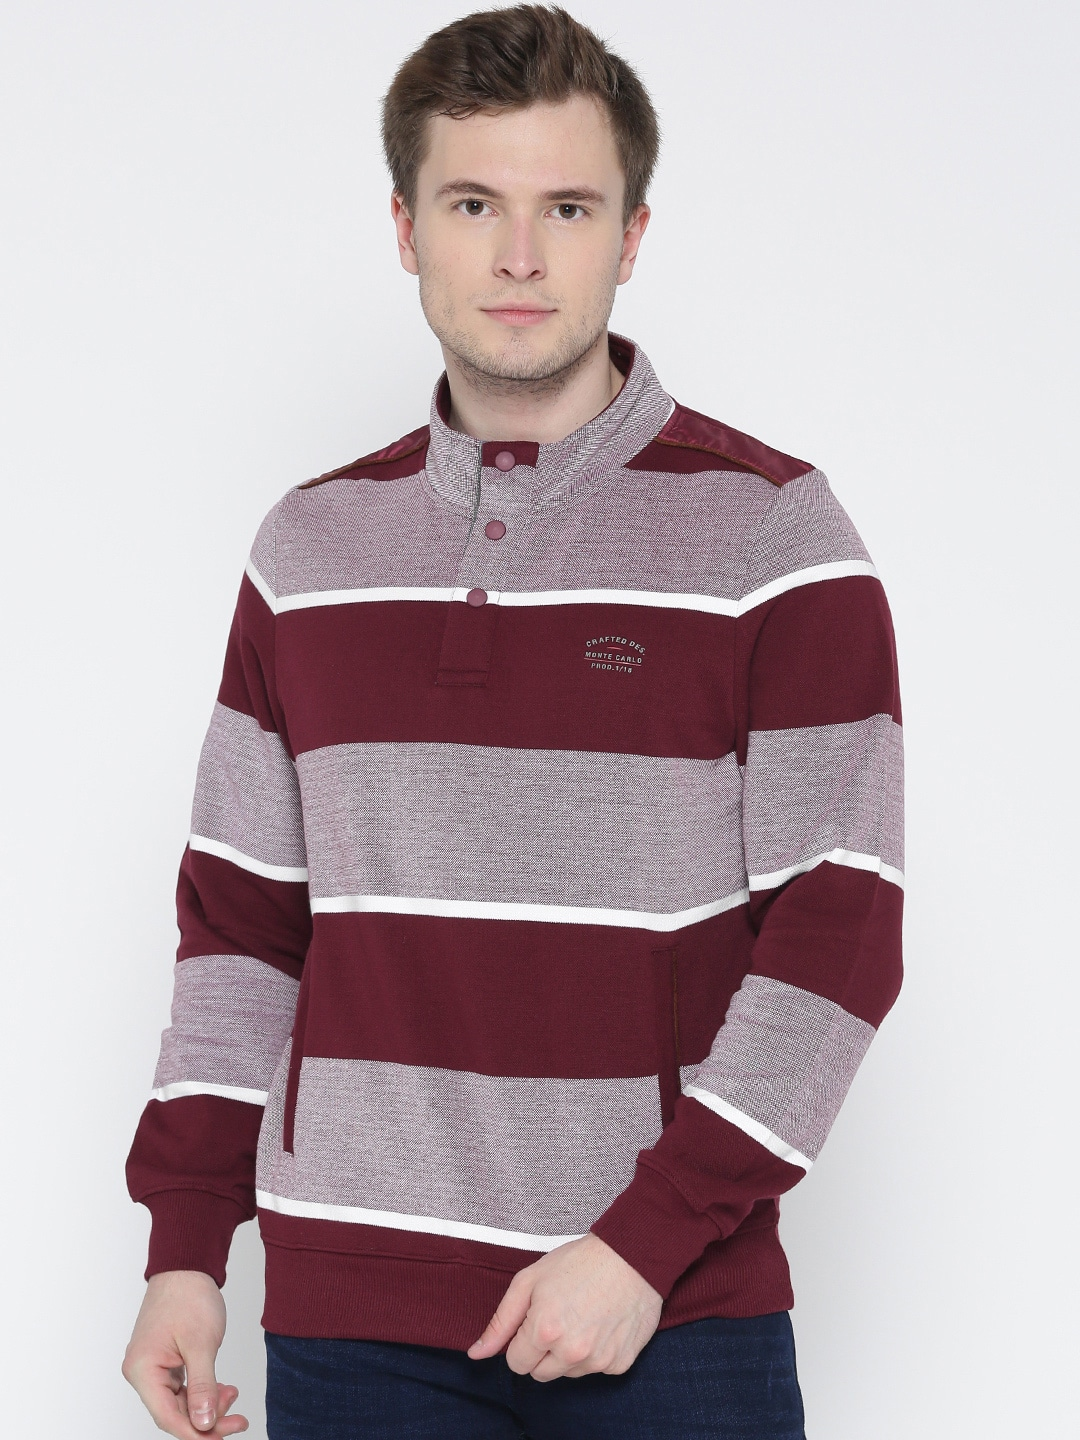 Monte Carlo Men Maroon & Grey Striped Sweatshirt image